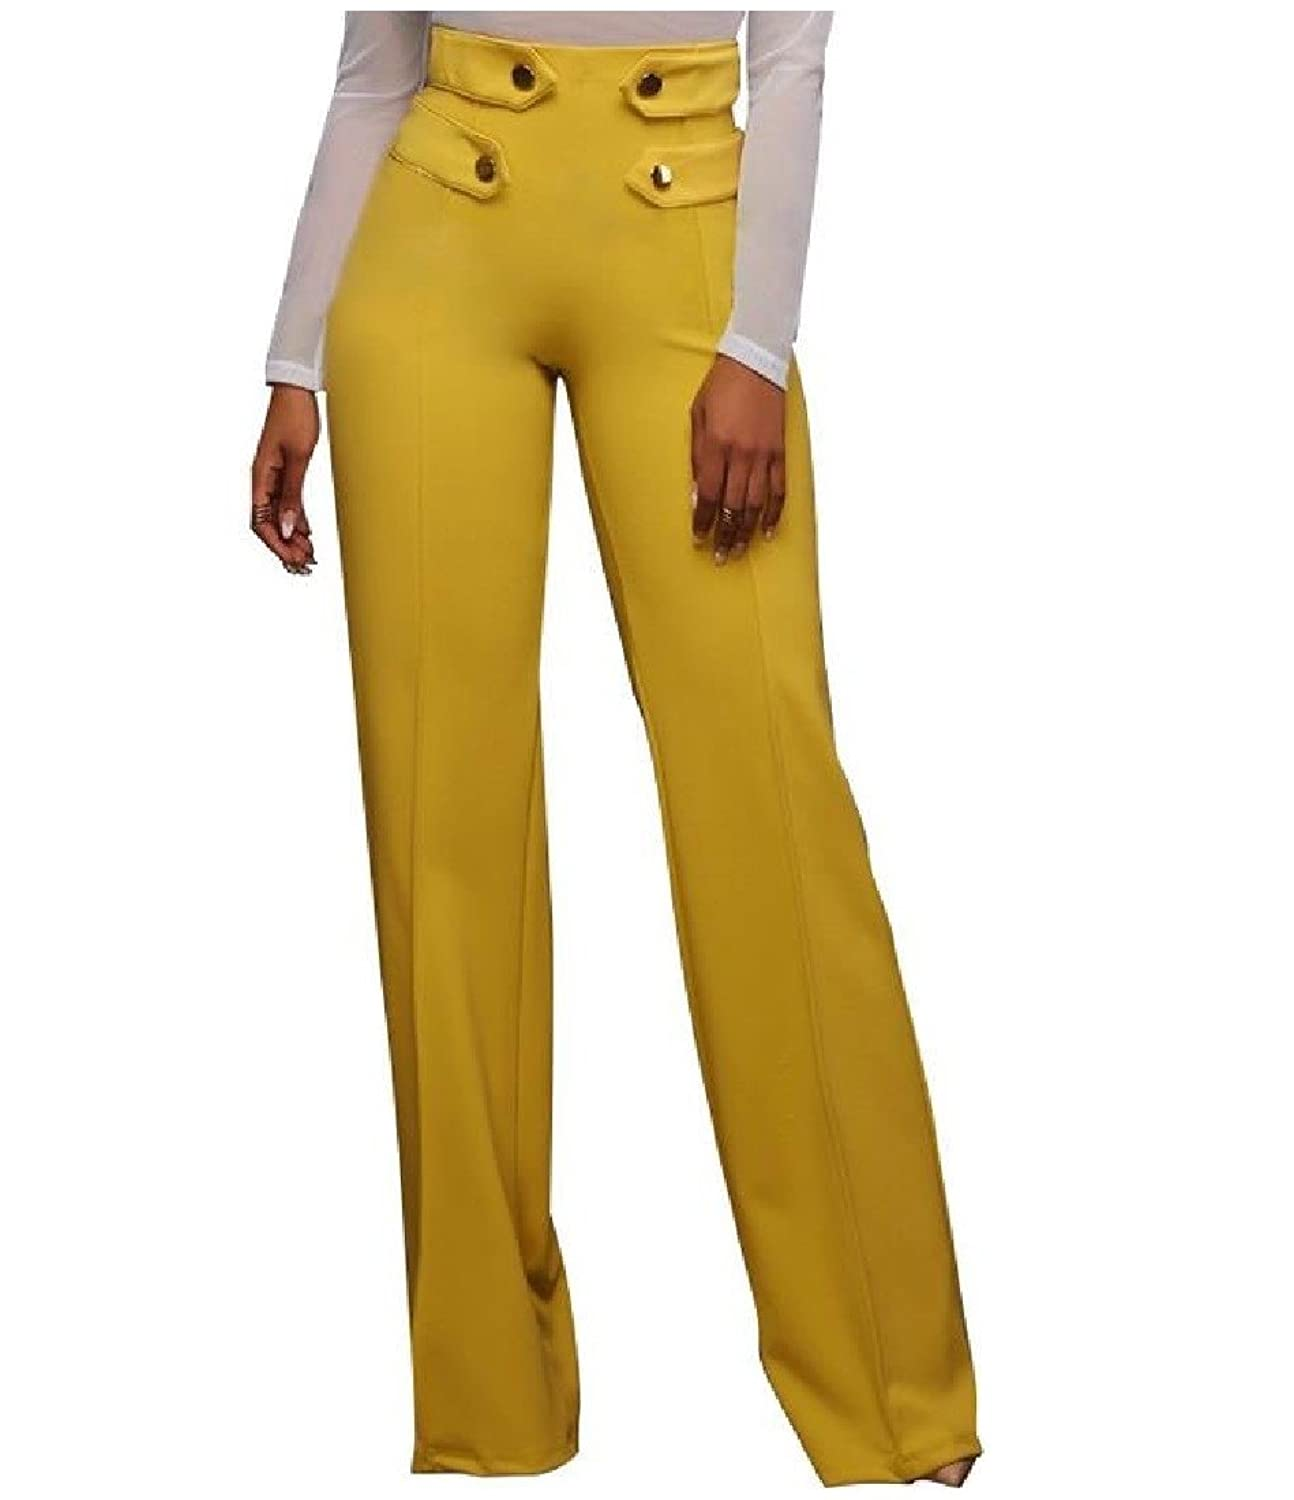 Abetteric Womens High Waist Solid Wide Legs Casual Soft Chic Trousers